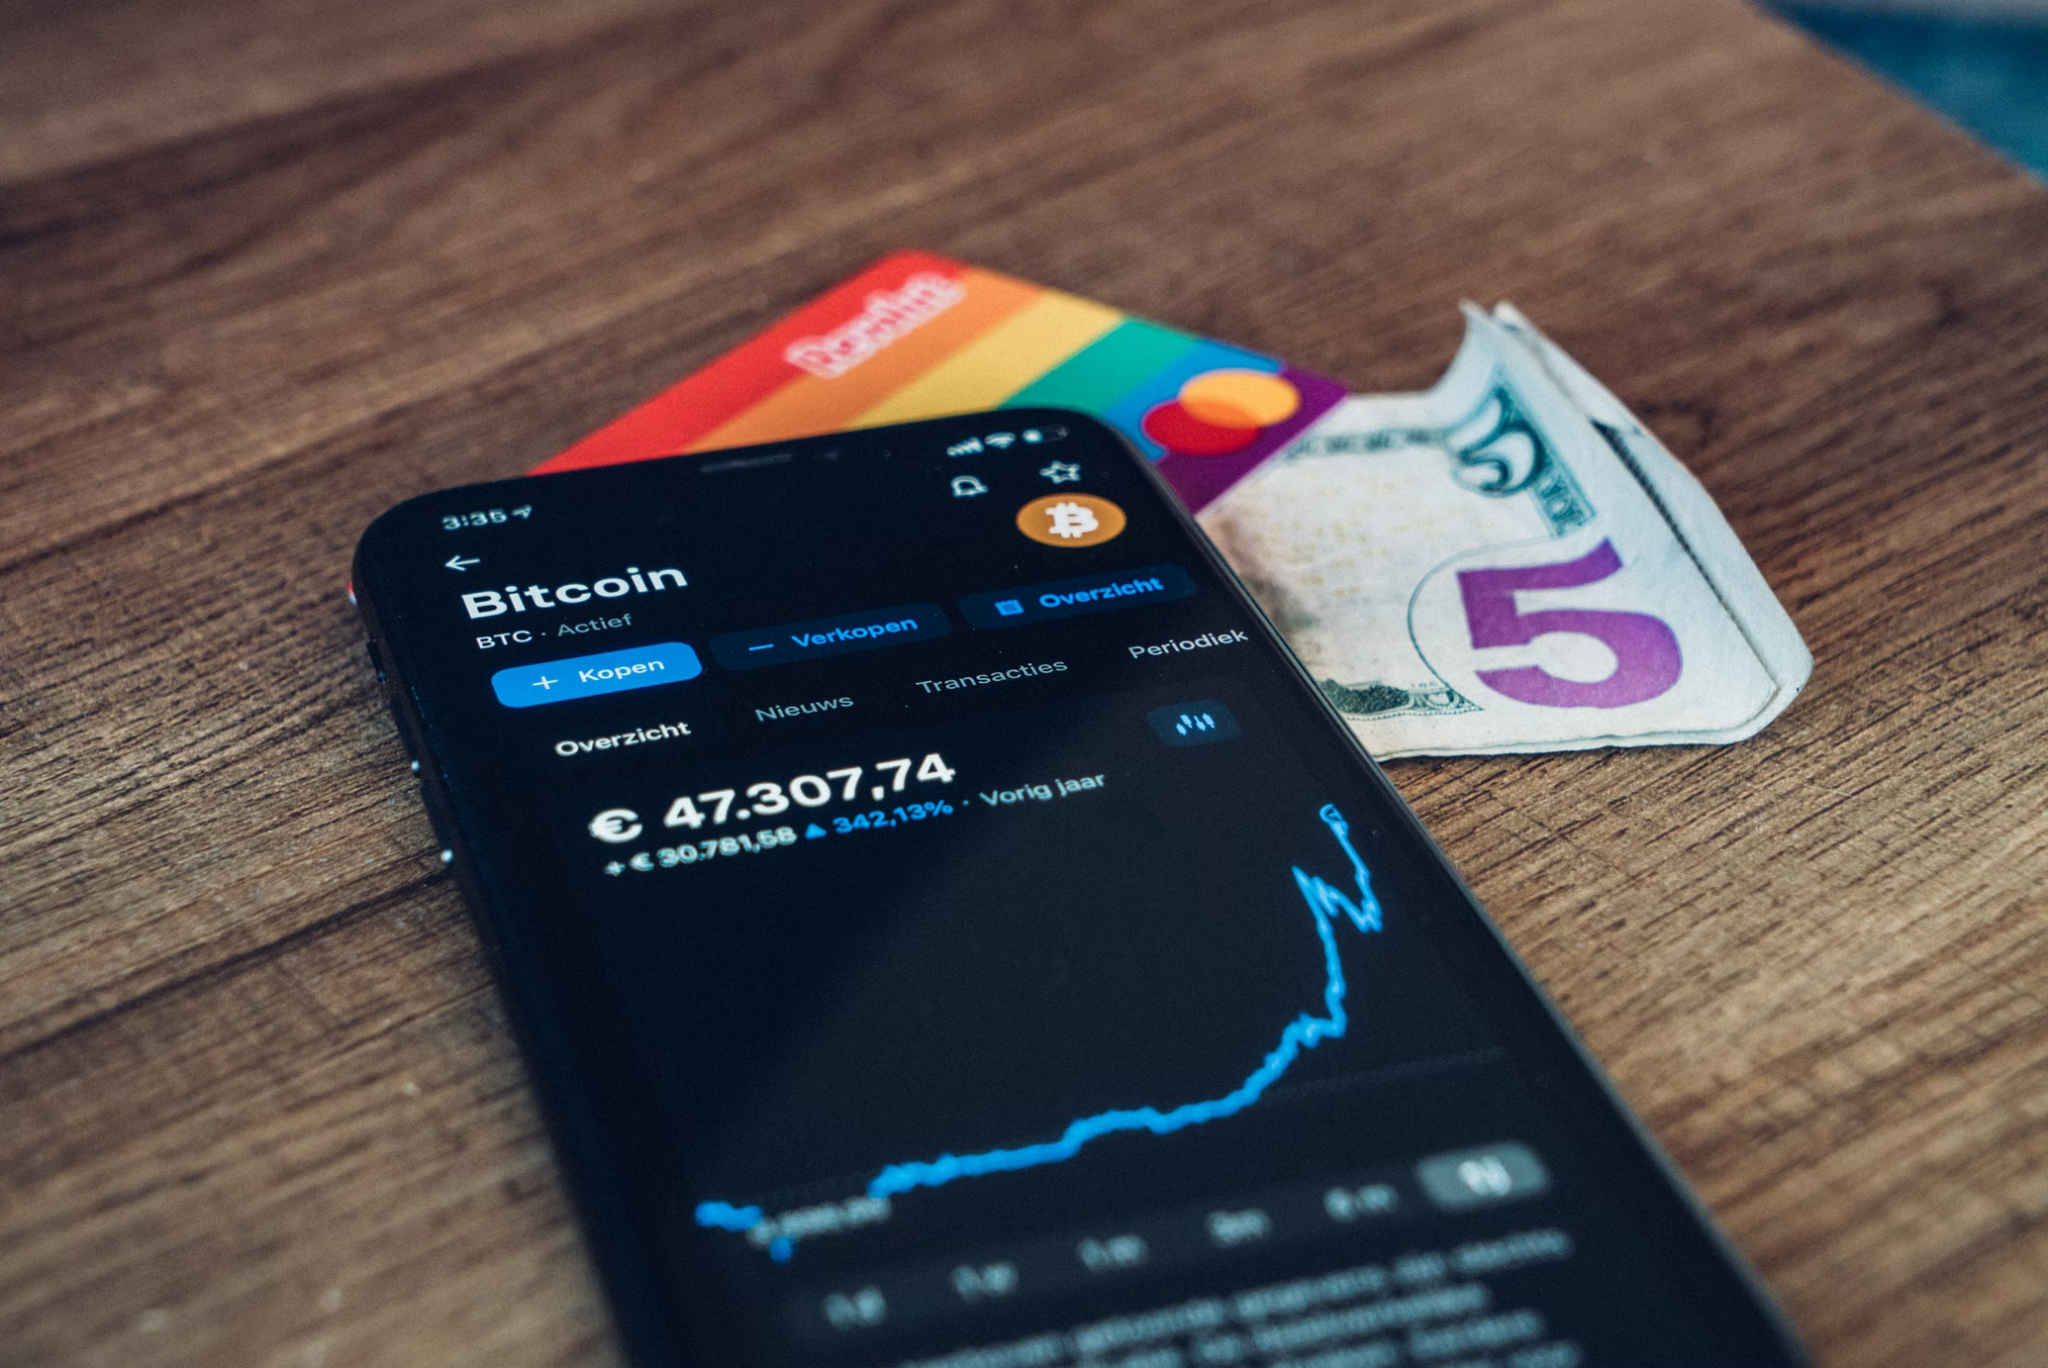 Best Bitcoin Wallet Trustee Wallet Helps to Manage Your Crypto Assets